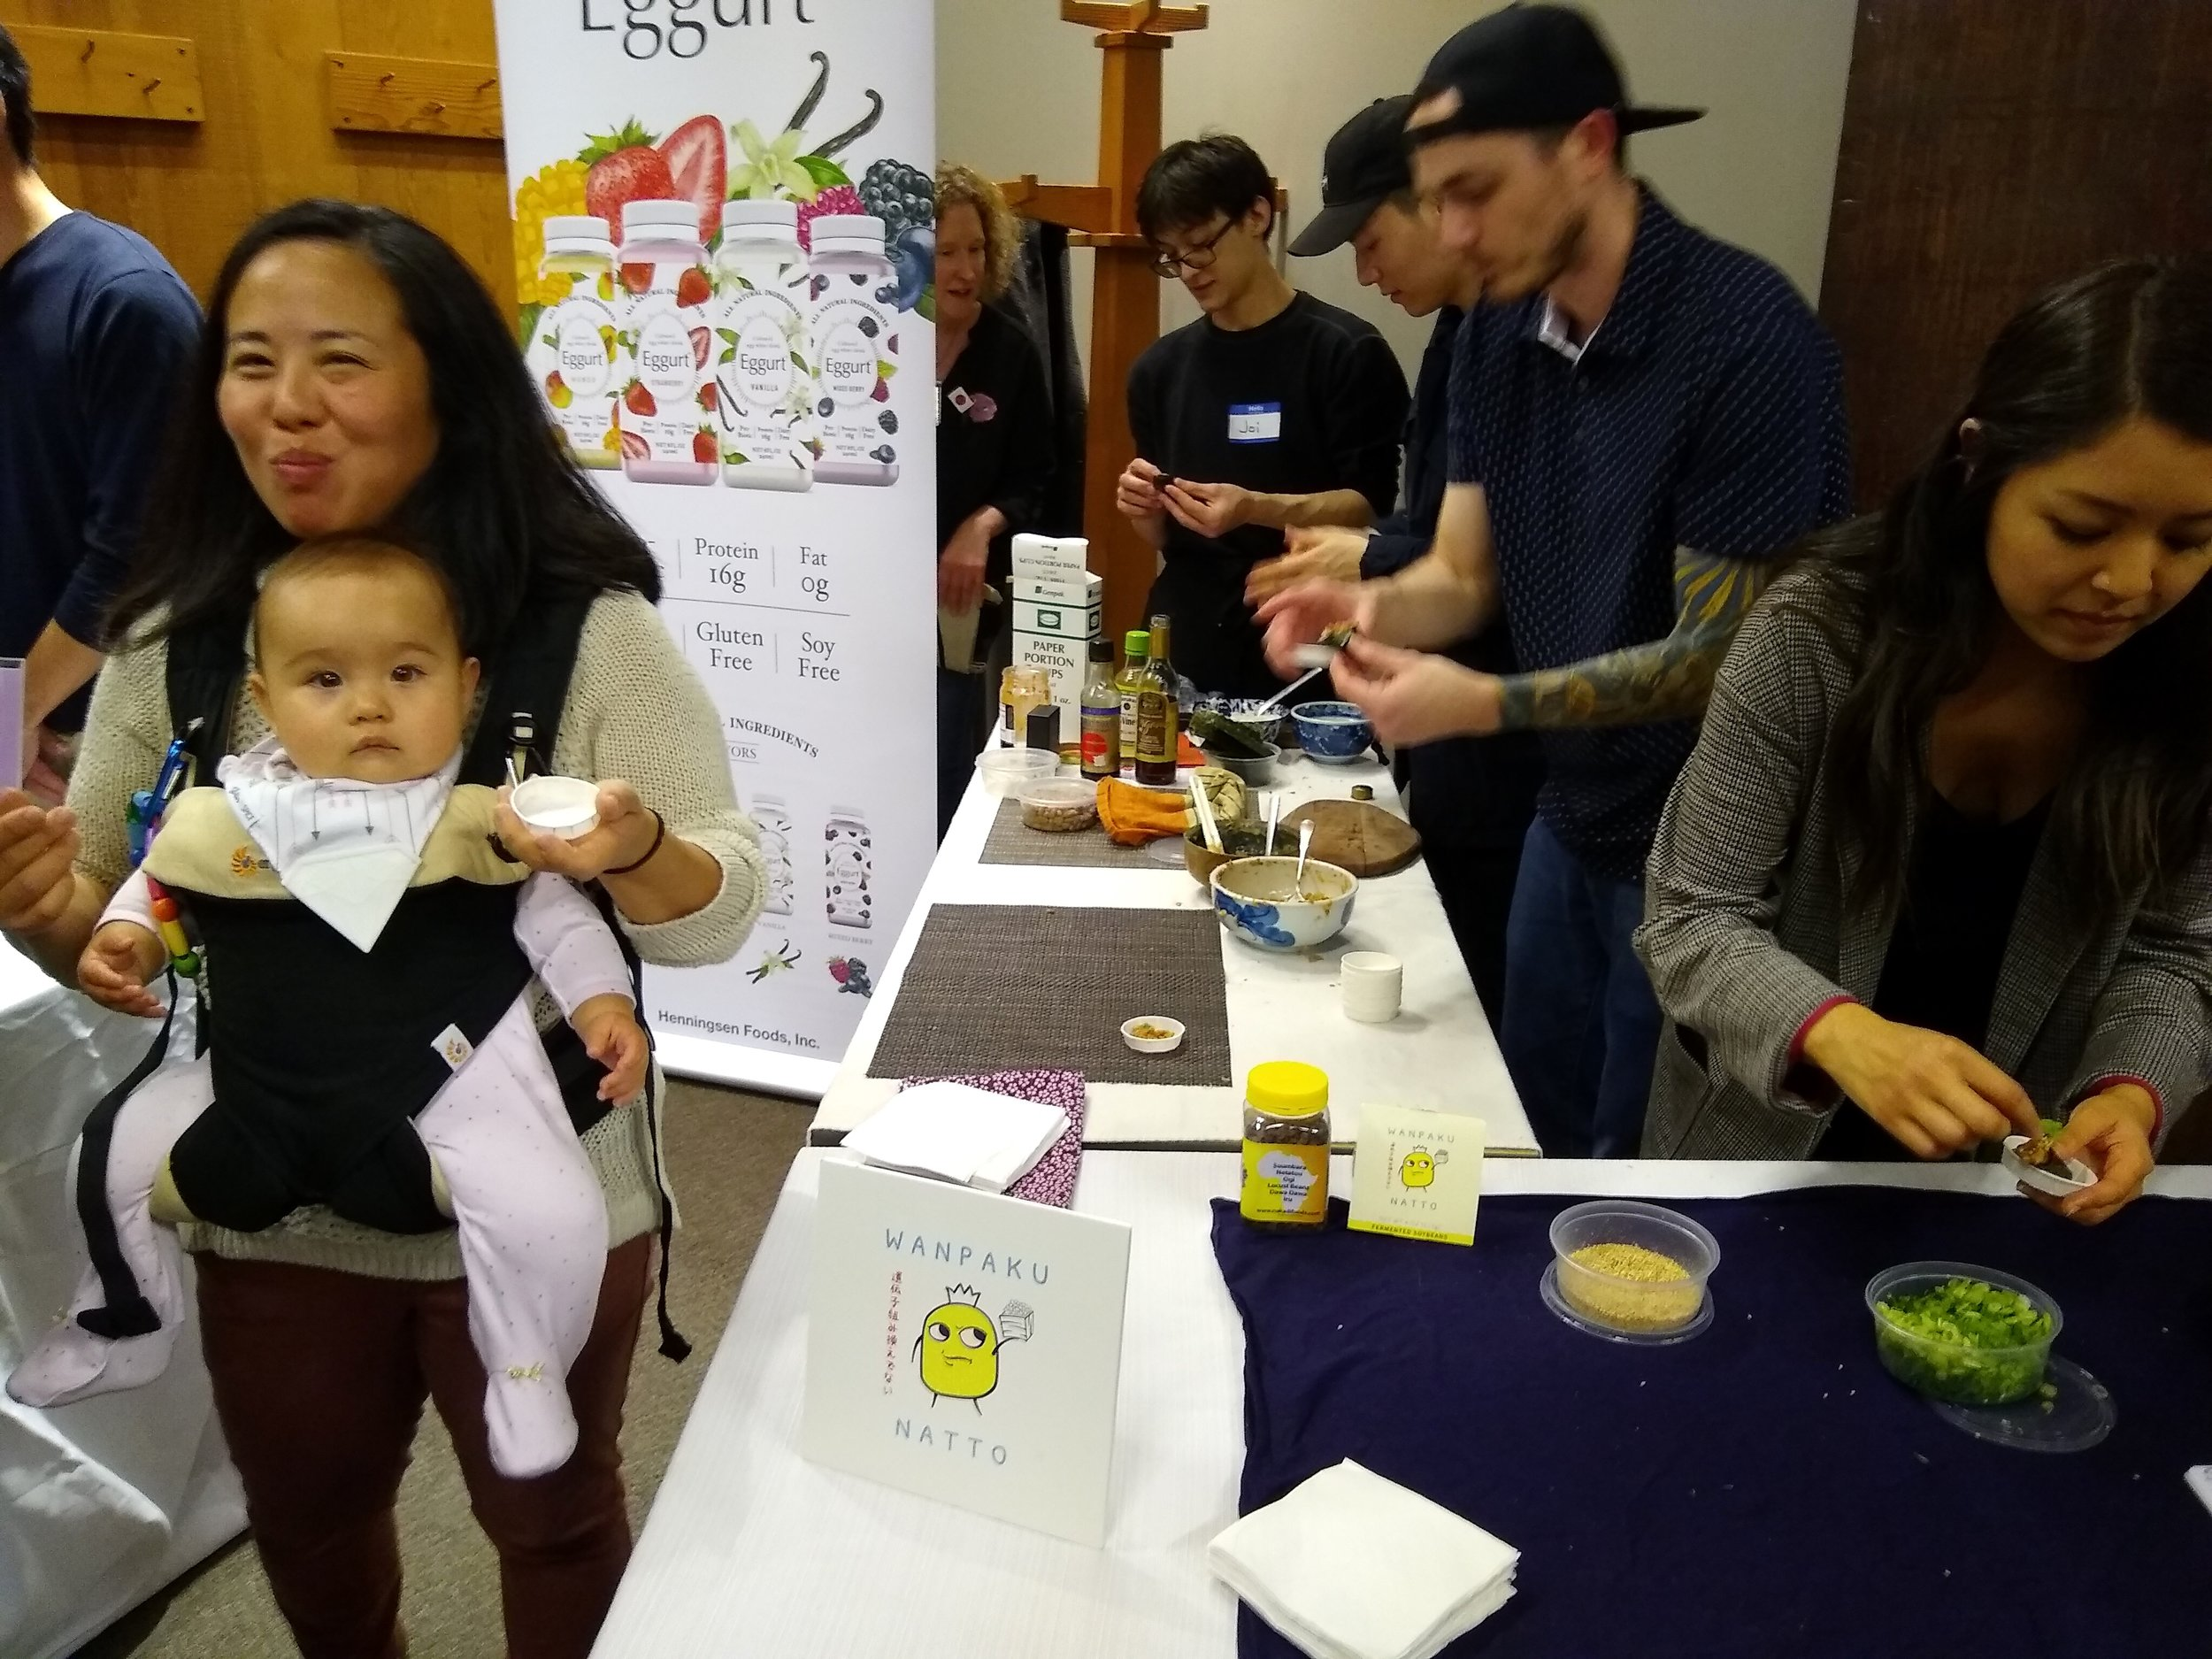 Festival co-organizer Heidi Nestler's crew, including her son Joi and his friends, putting together festival mini temakis (aka hand rolls) with her natto, rice and Choi's Kimchi. So yummy!!!